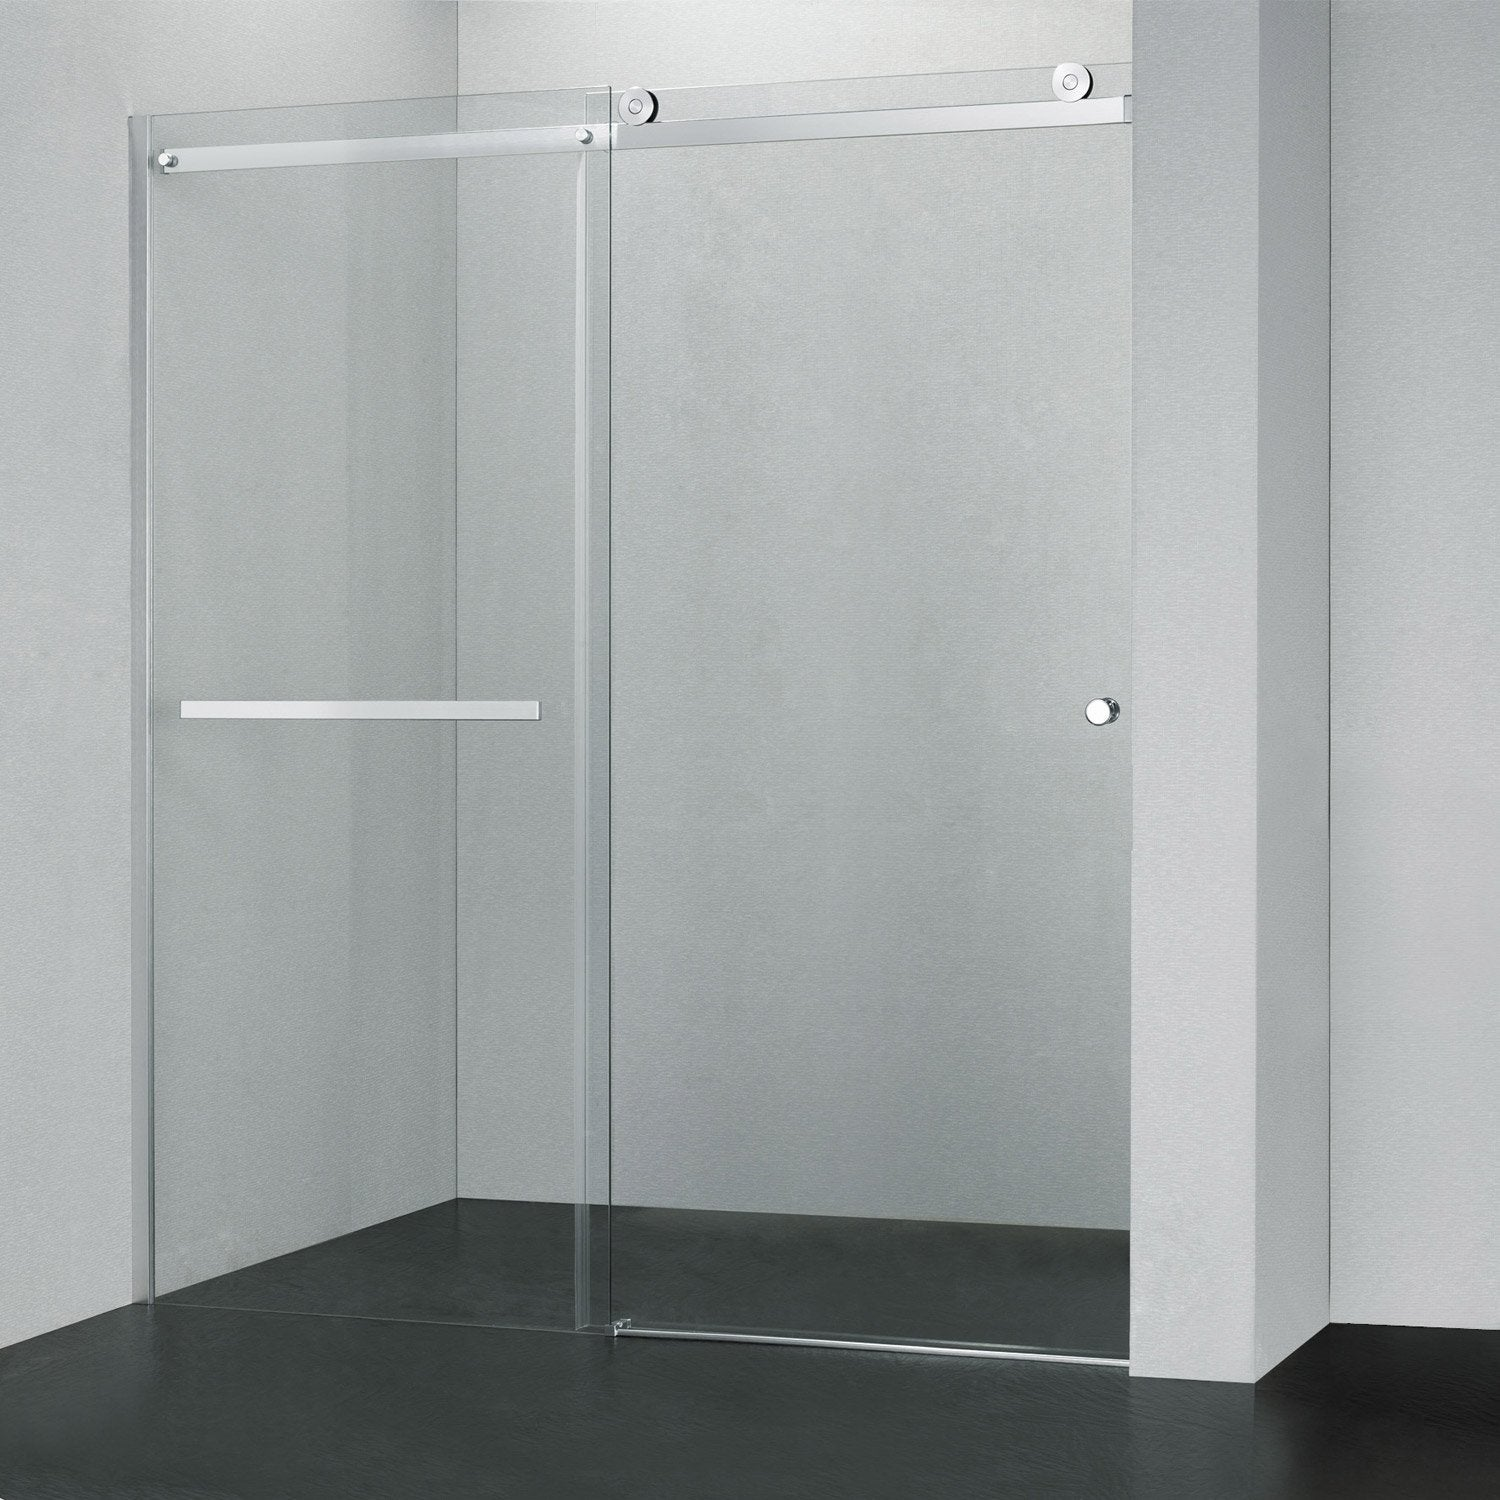 Porte de douche coulissante fabrik verre transparent for Porte verre douche